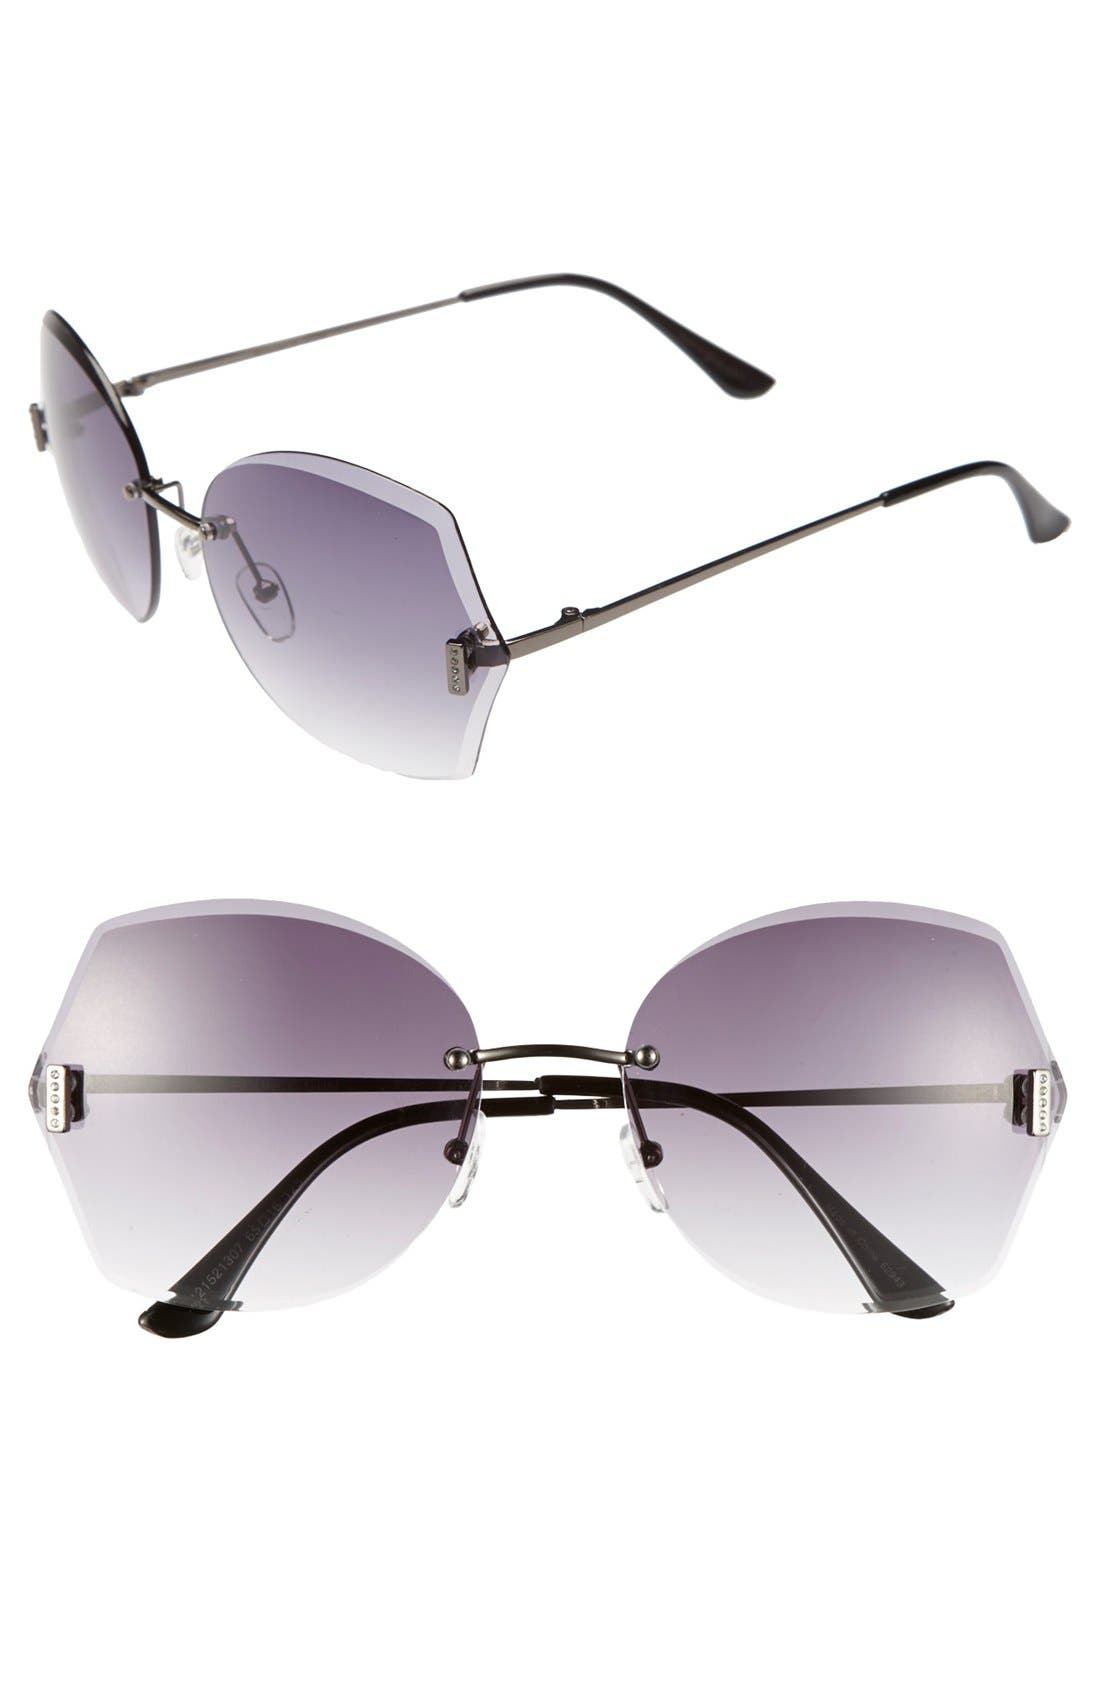 Main Image - Outlook Eyewear 'Bounce' 65mm Sunglasses